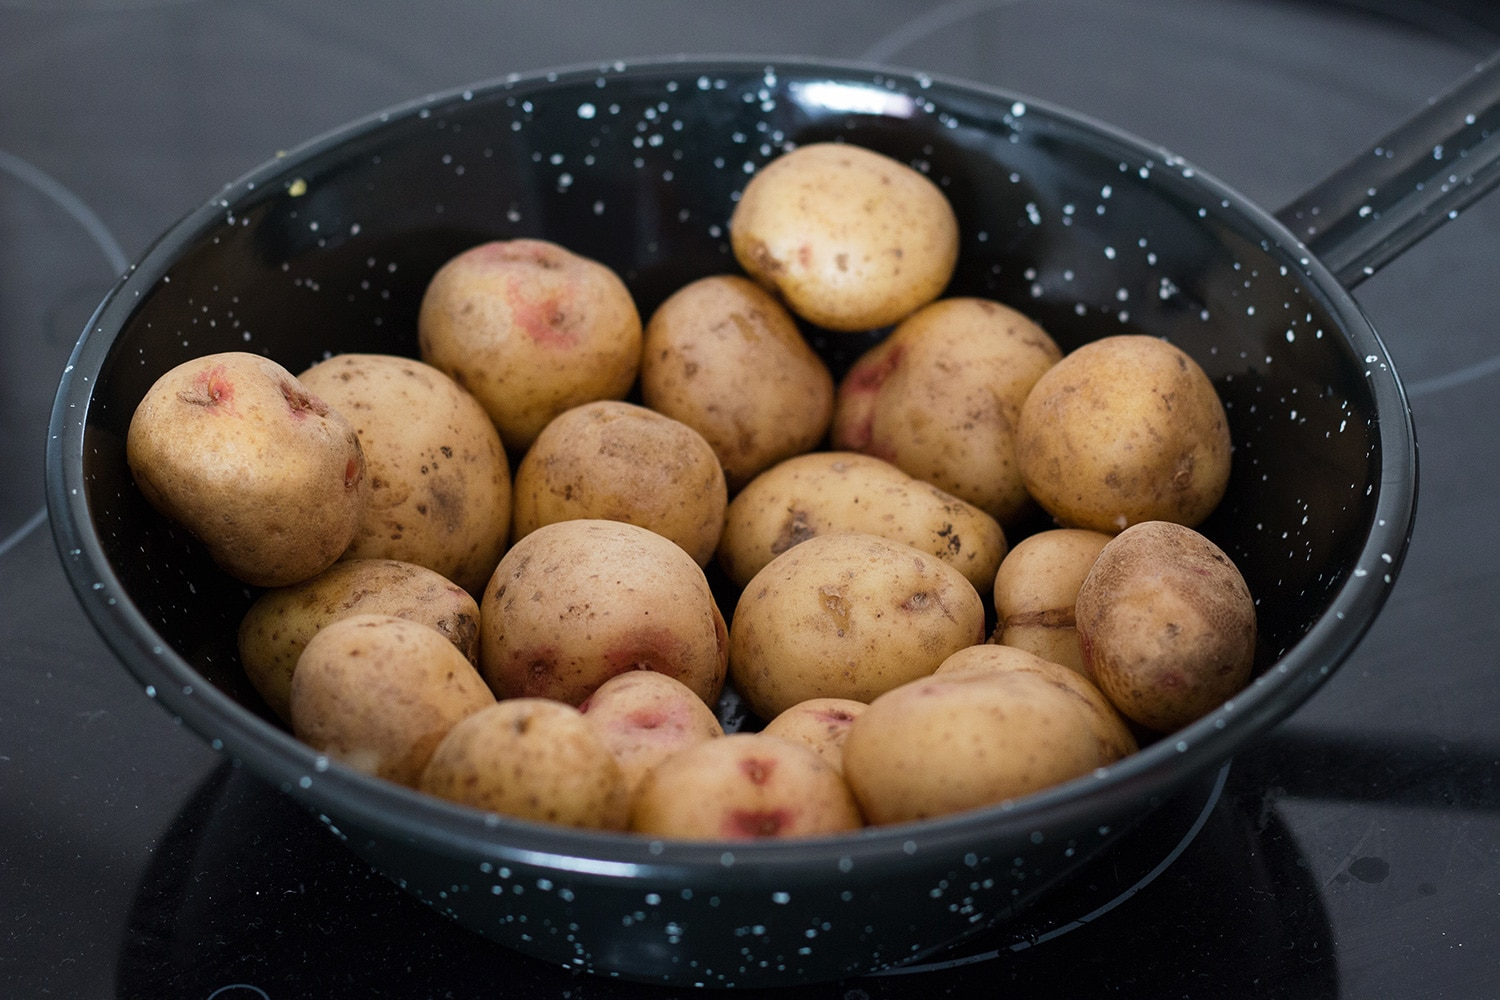 Canarian Wrinkly Potatoes (Papas Arrugadas) make a perfect side dish to any meal. They are really easy to make and require only 2 ingredients! | cookingtheglobe.com